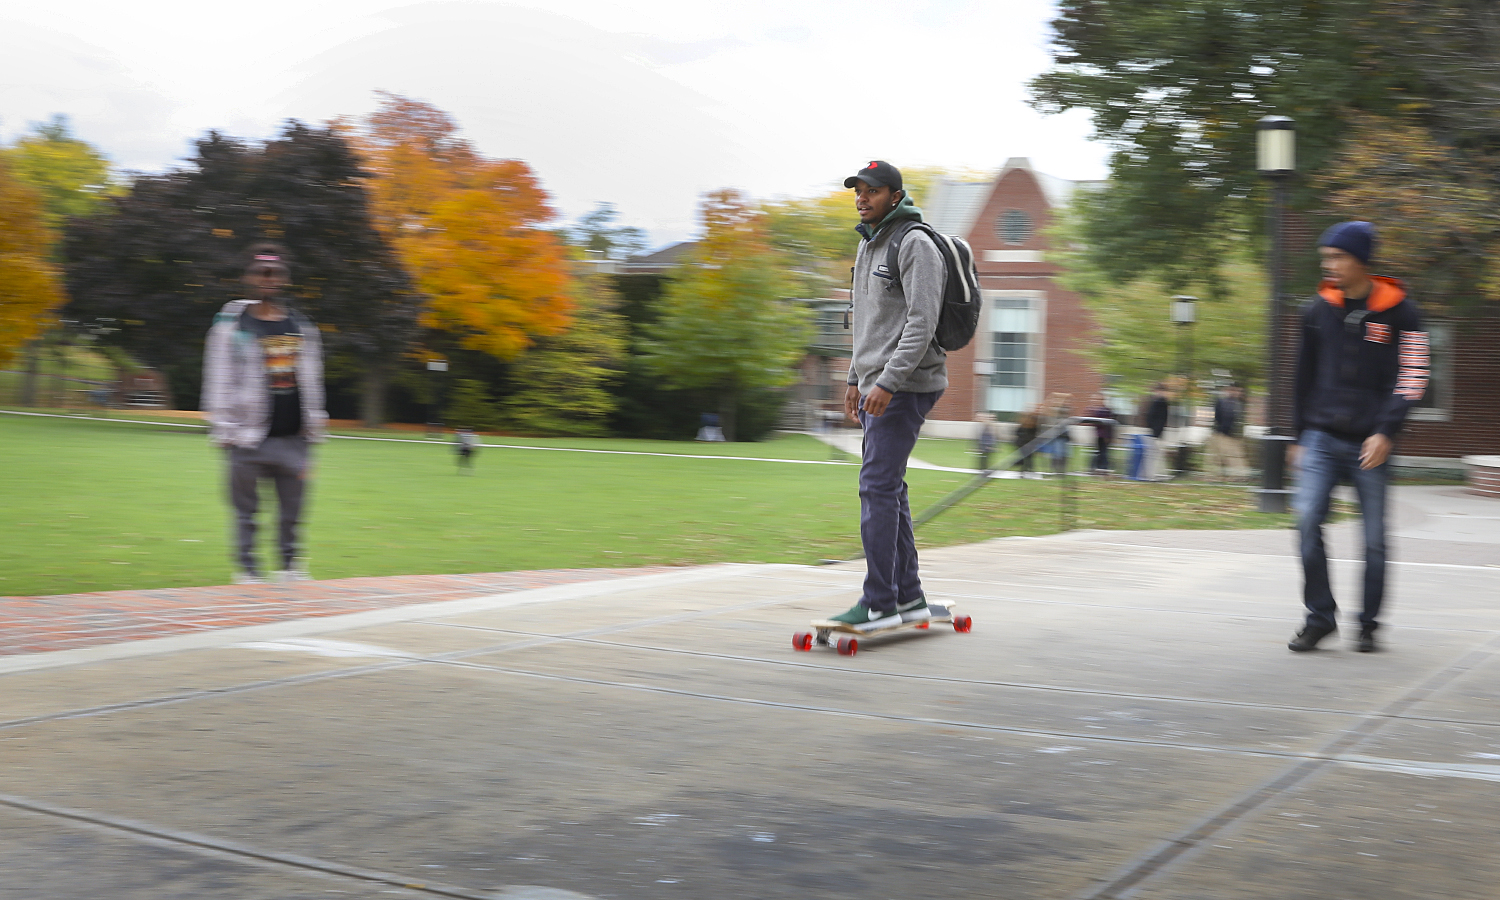 Stephen Rodgers '18 heads to his class aboard his new skateboard on Wednesday afternoon.